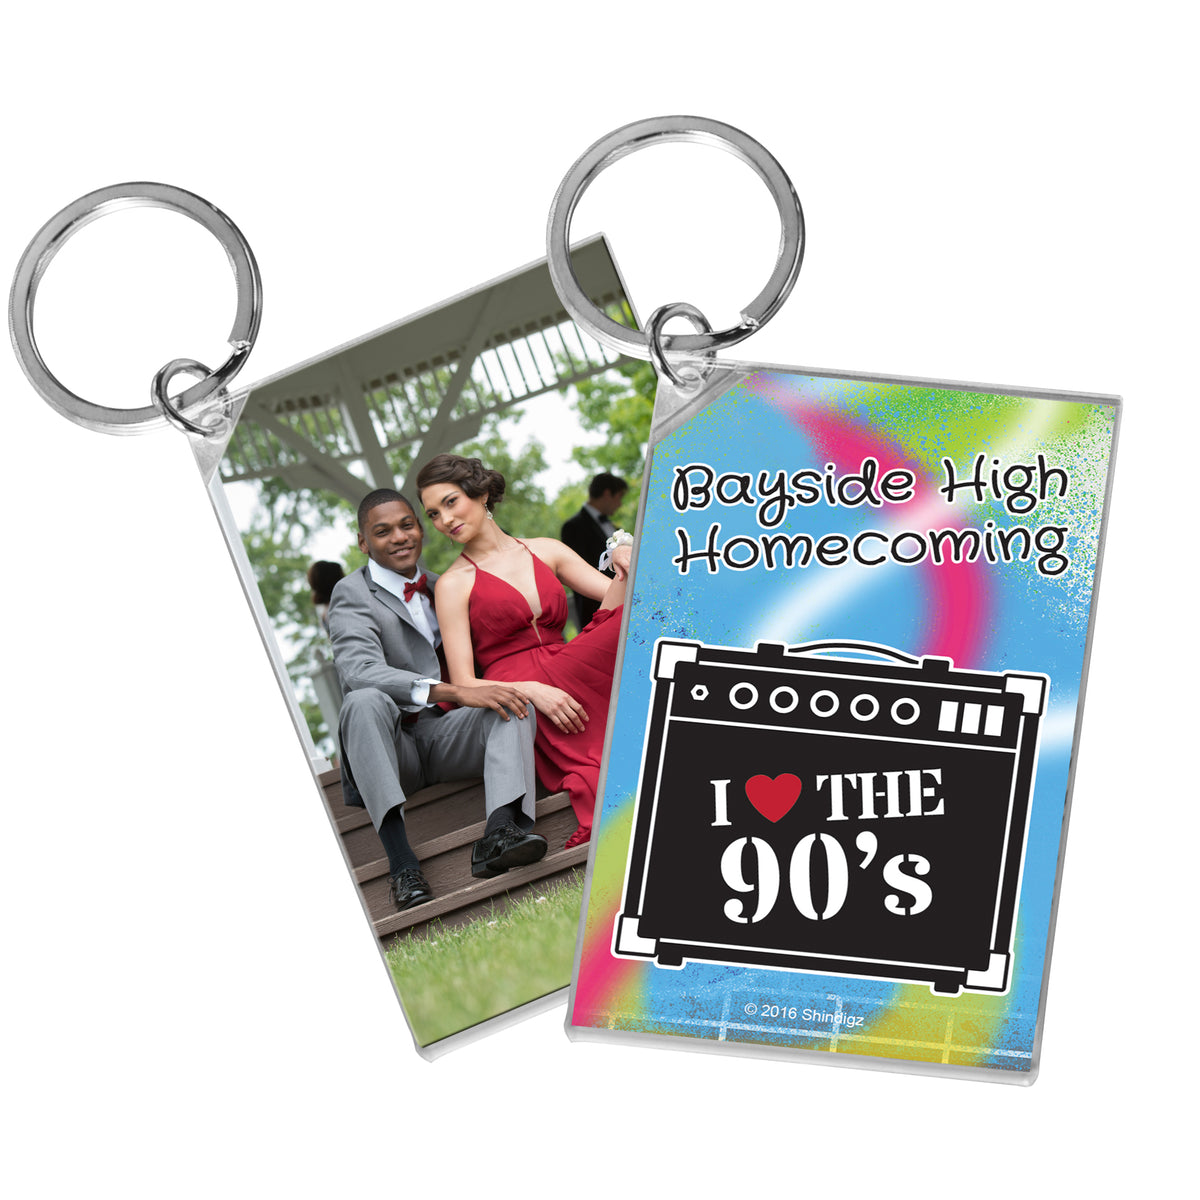 Totally 90's Personalized Acrylic Key Chain